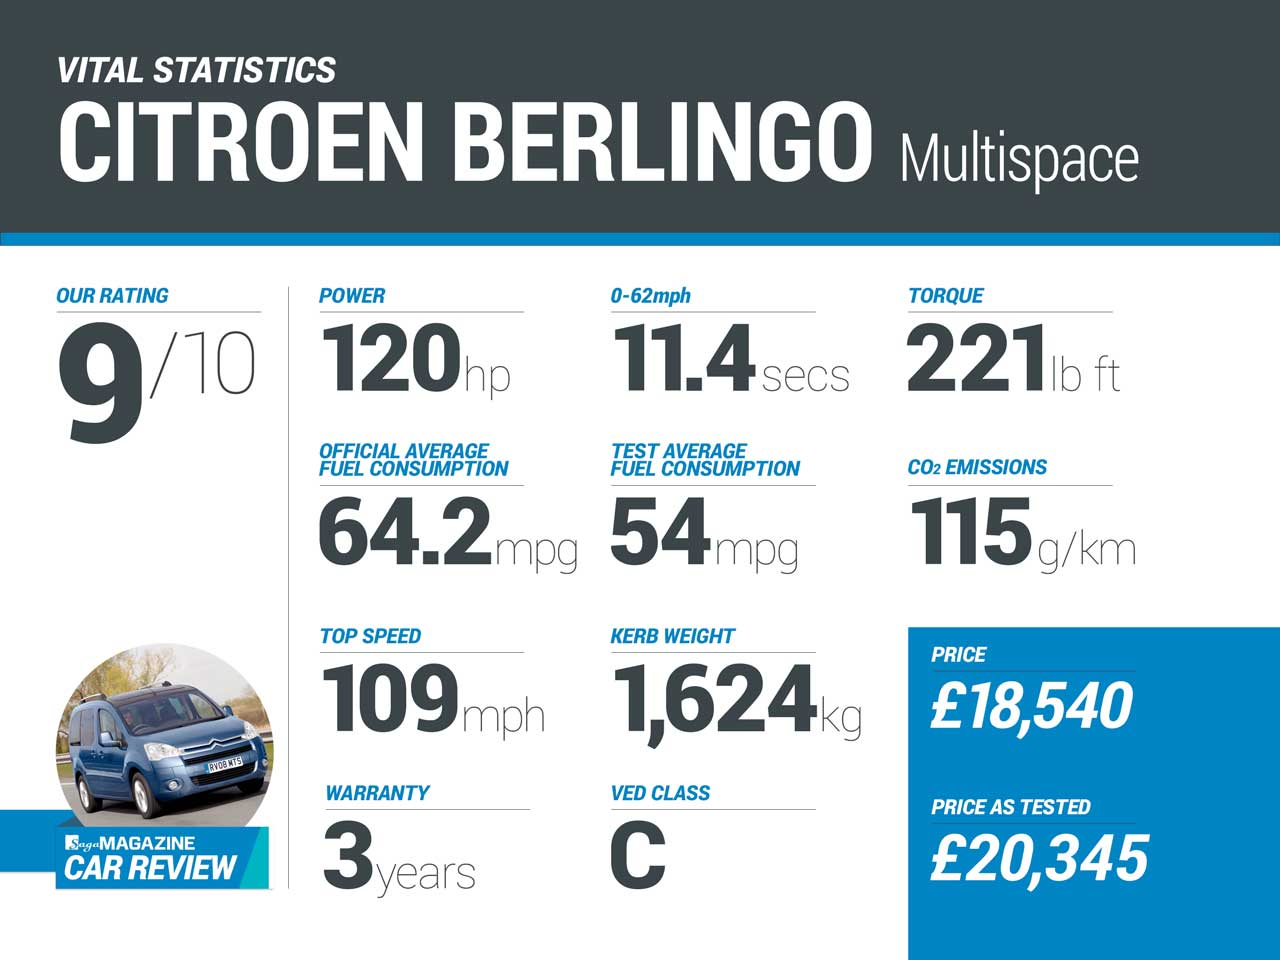 Citroen Berlingo infographic - Saga Magazine car review